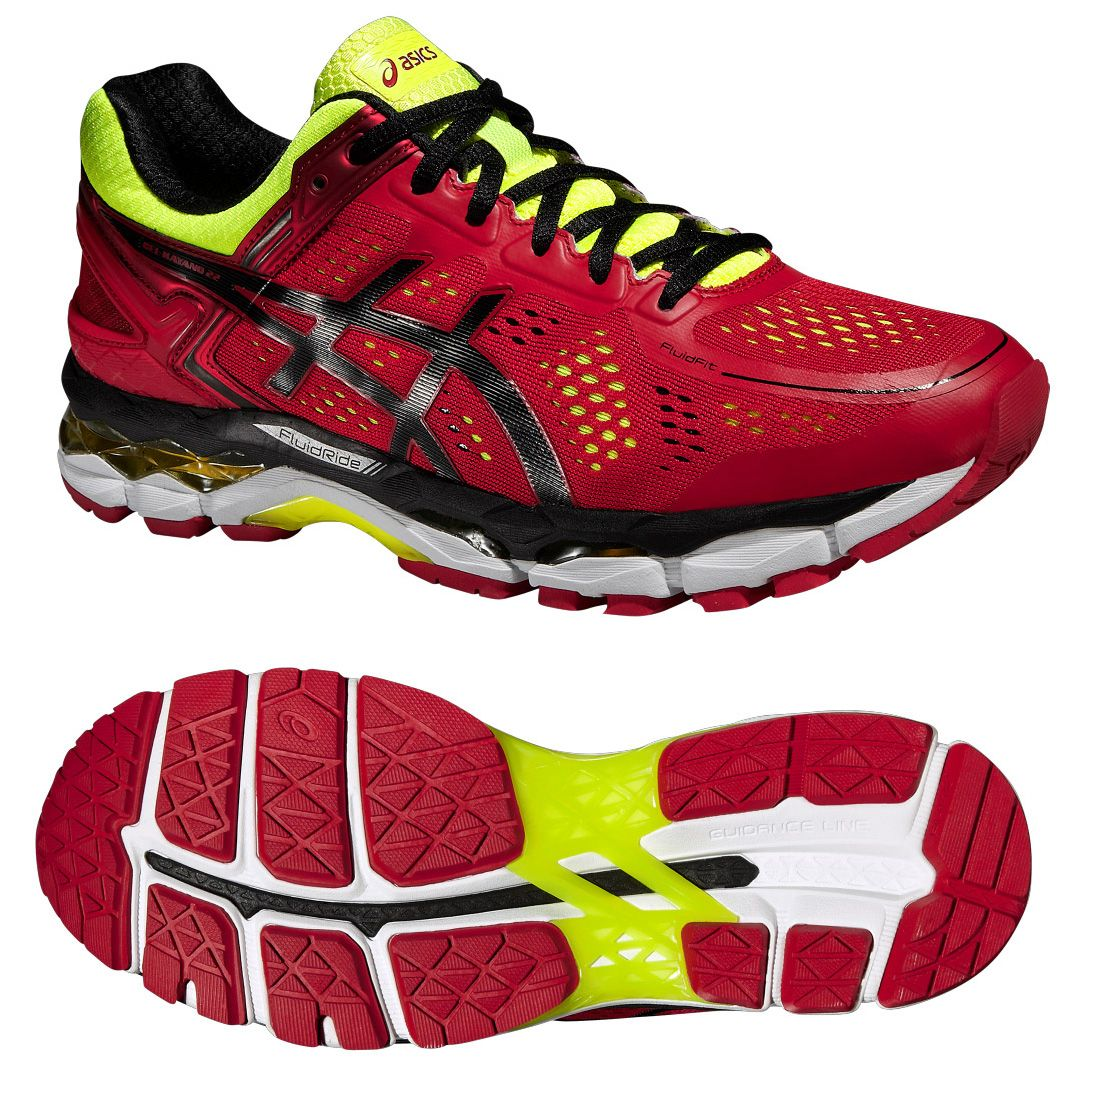 Running Shoes Without Heel Counter